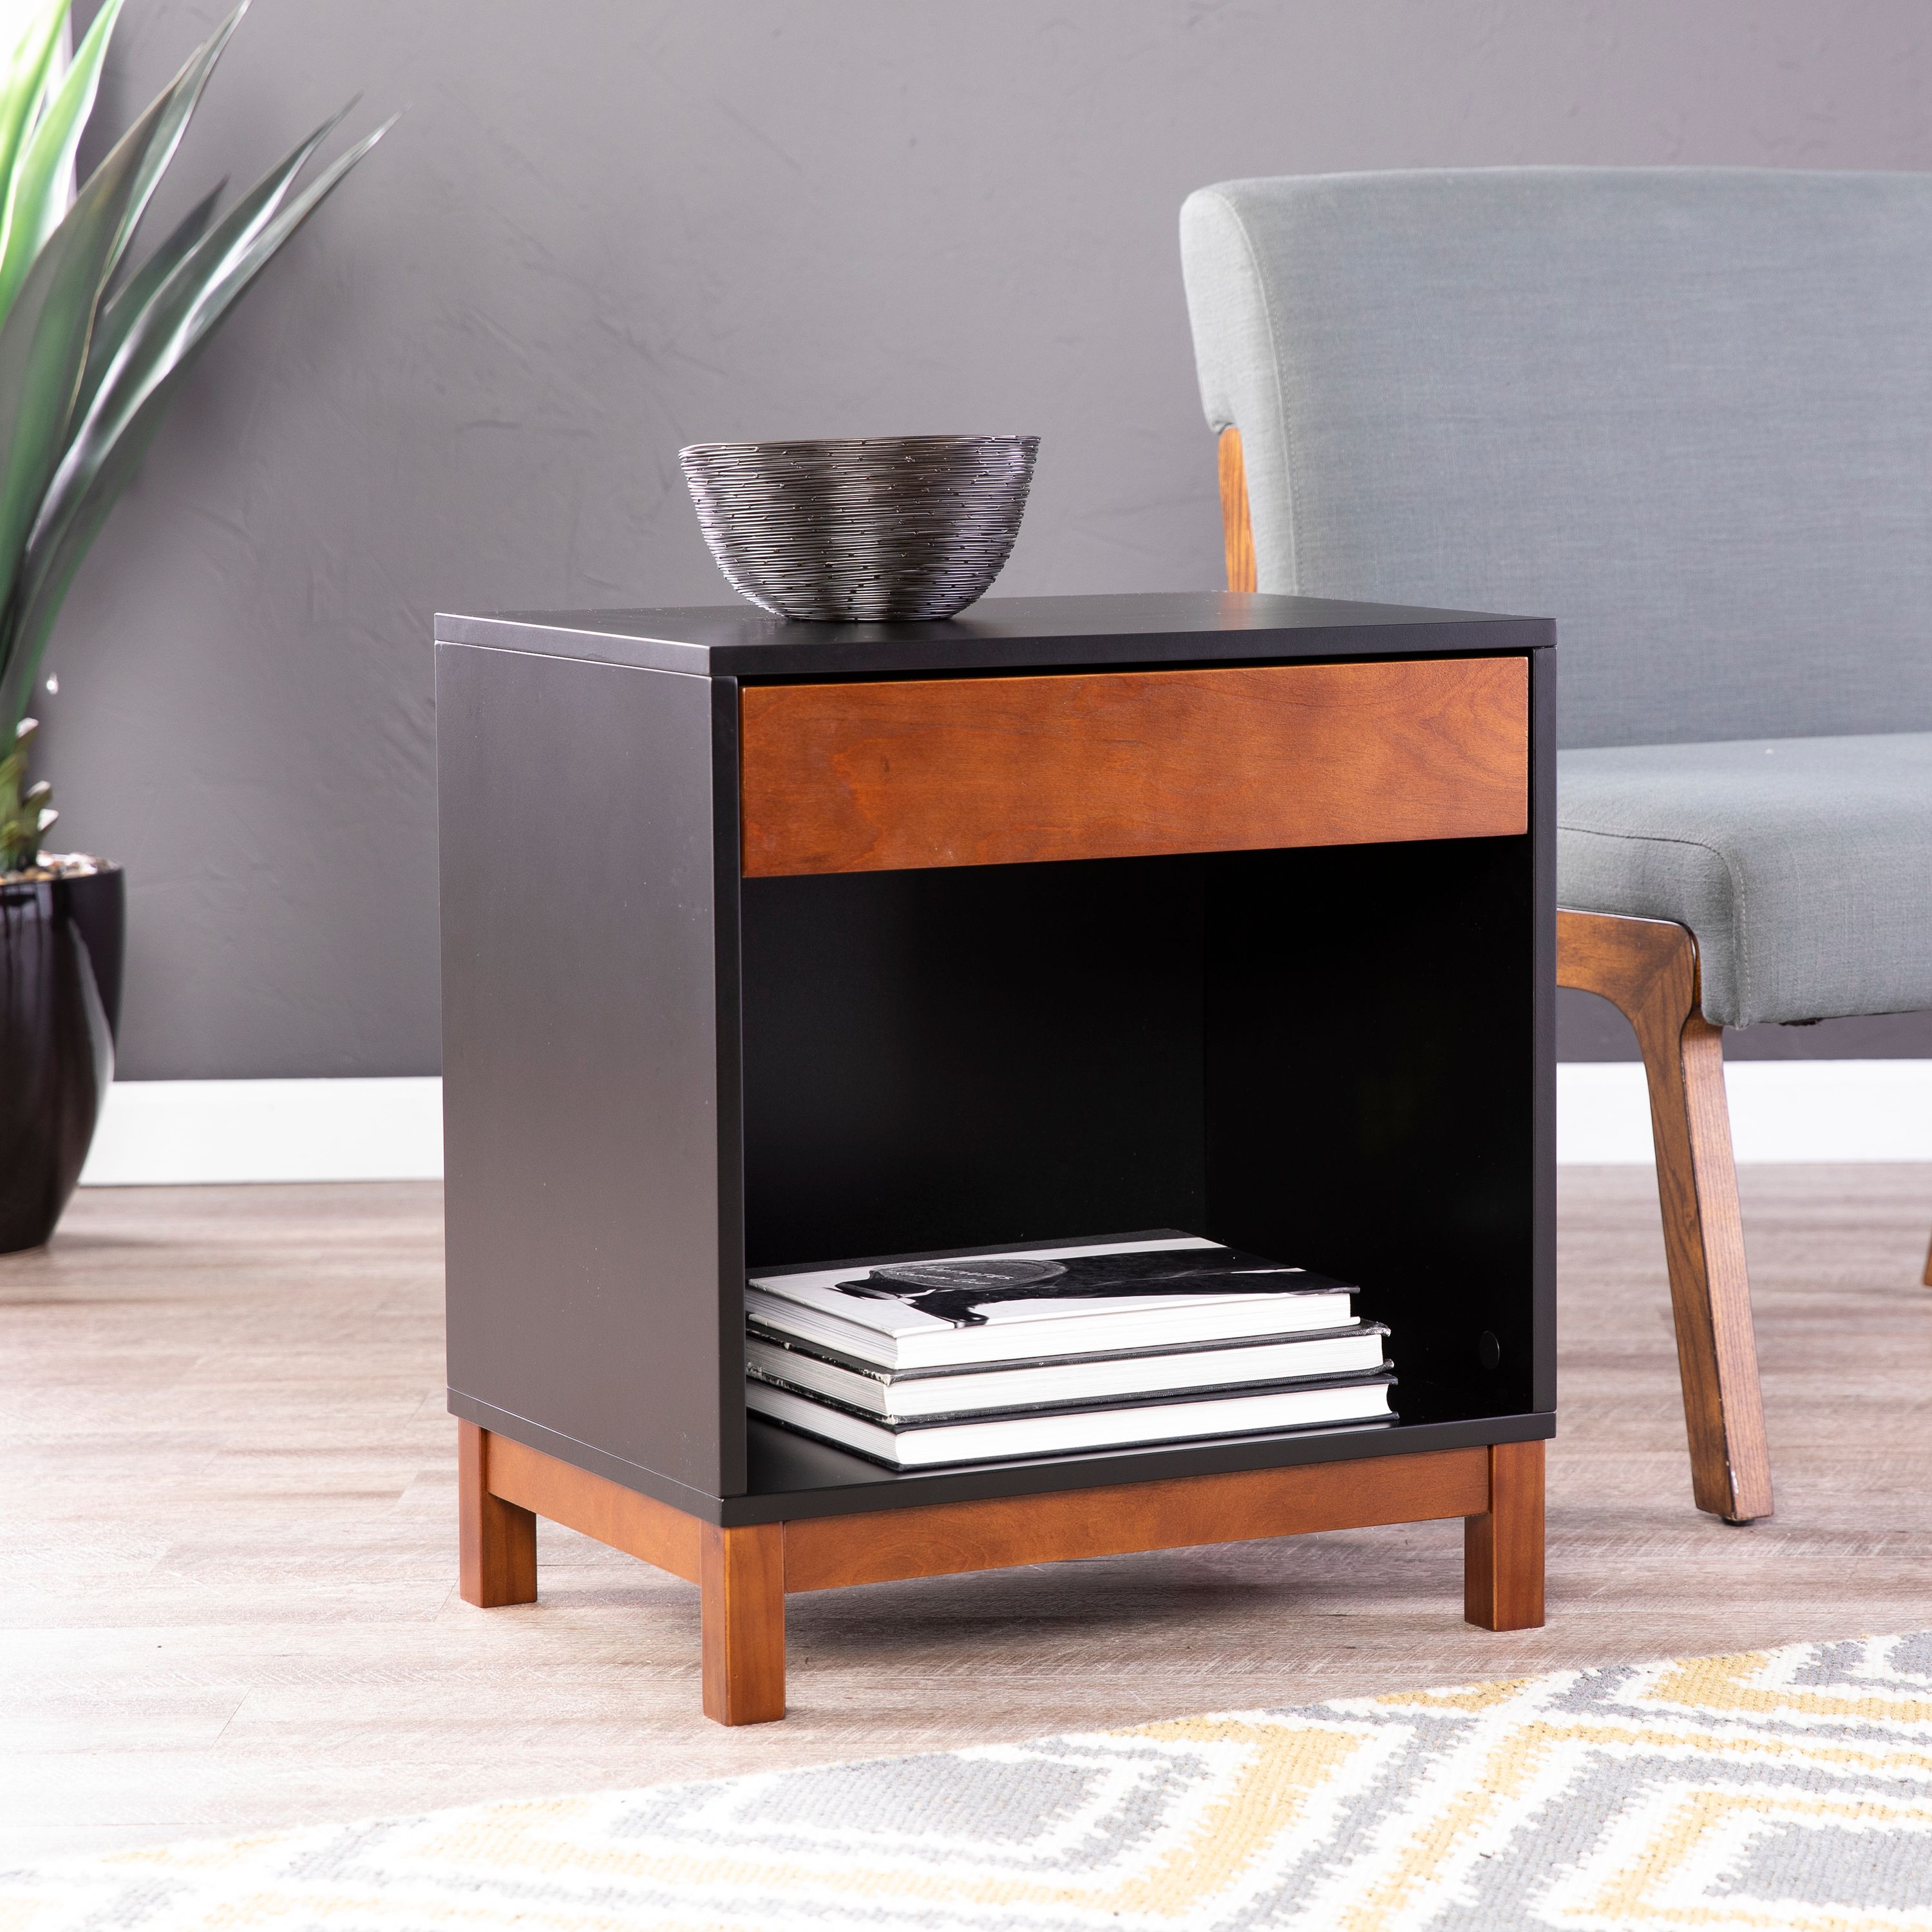 Holly & Martin Conlin Accent Table w/ Storage, Midcentury Modern, Black